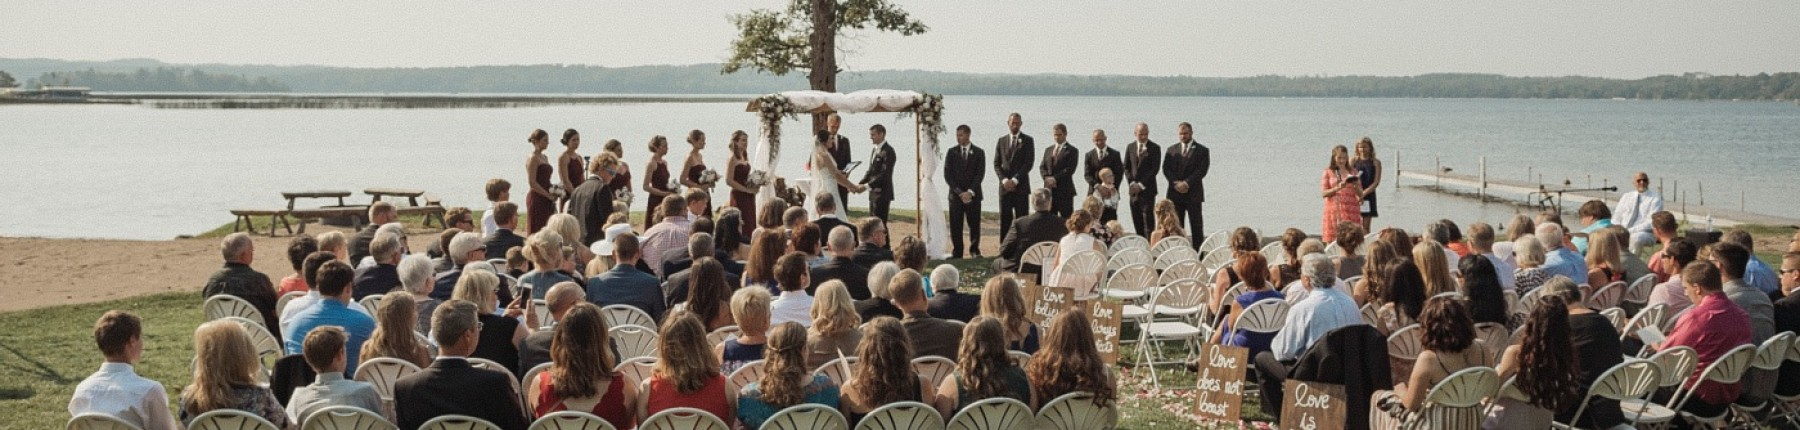 Outdoor lakeside wedding ceremony